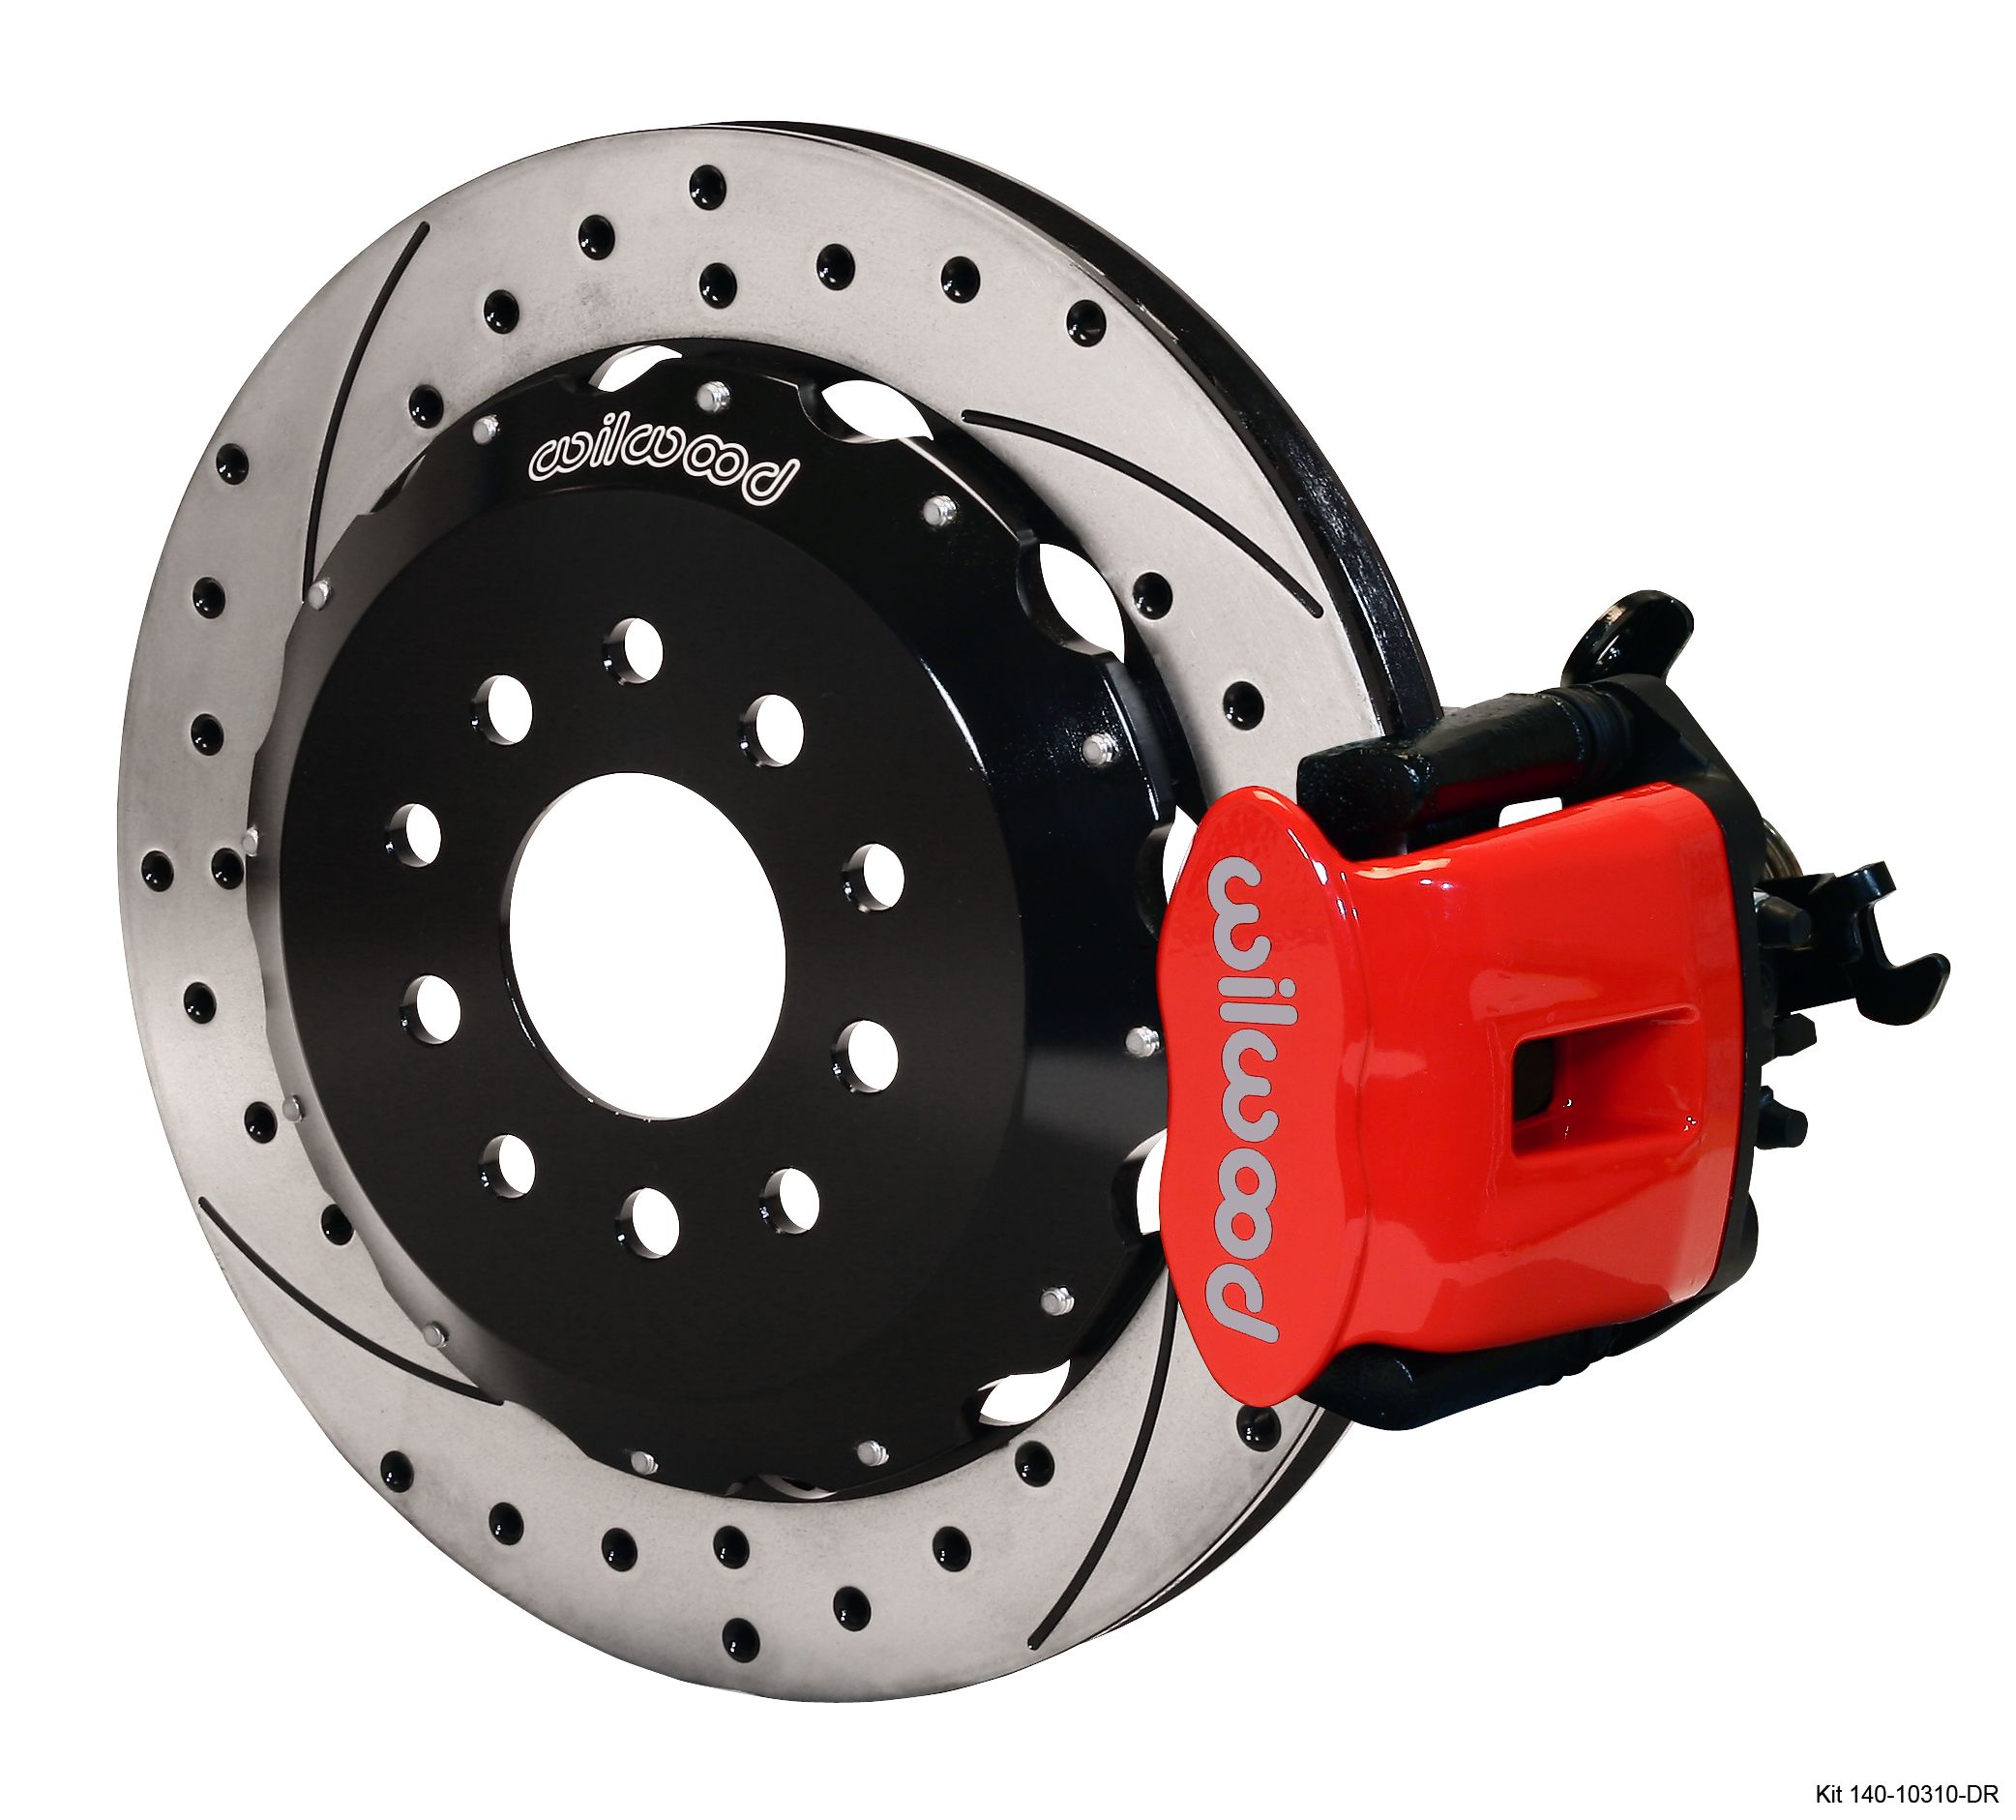 Honda S2000 Big Brake Kits from Wilwood: FRONT